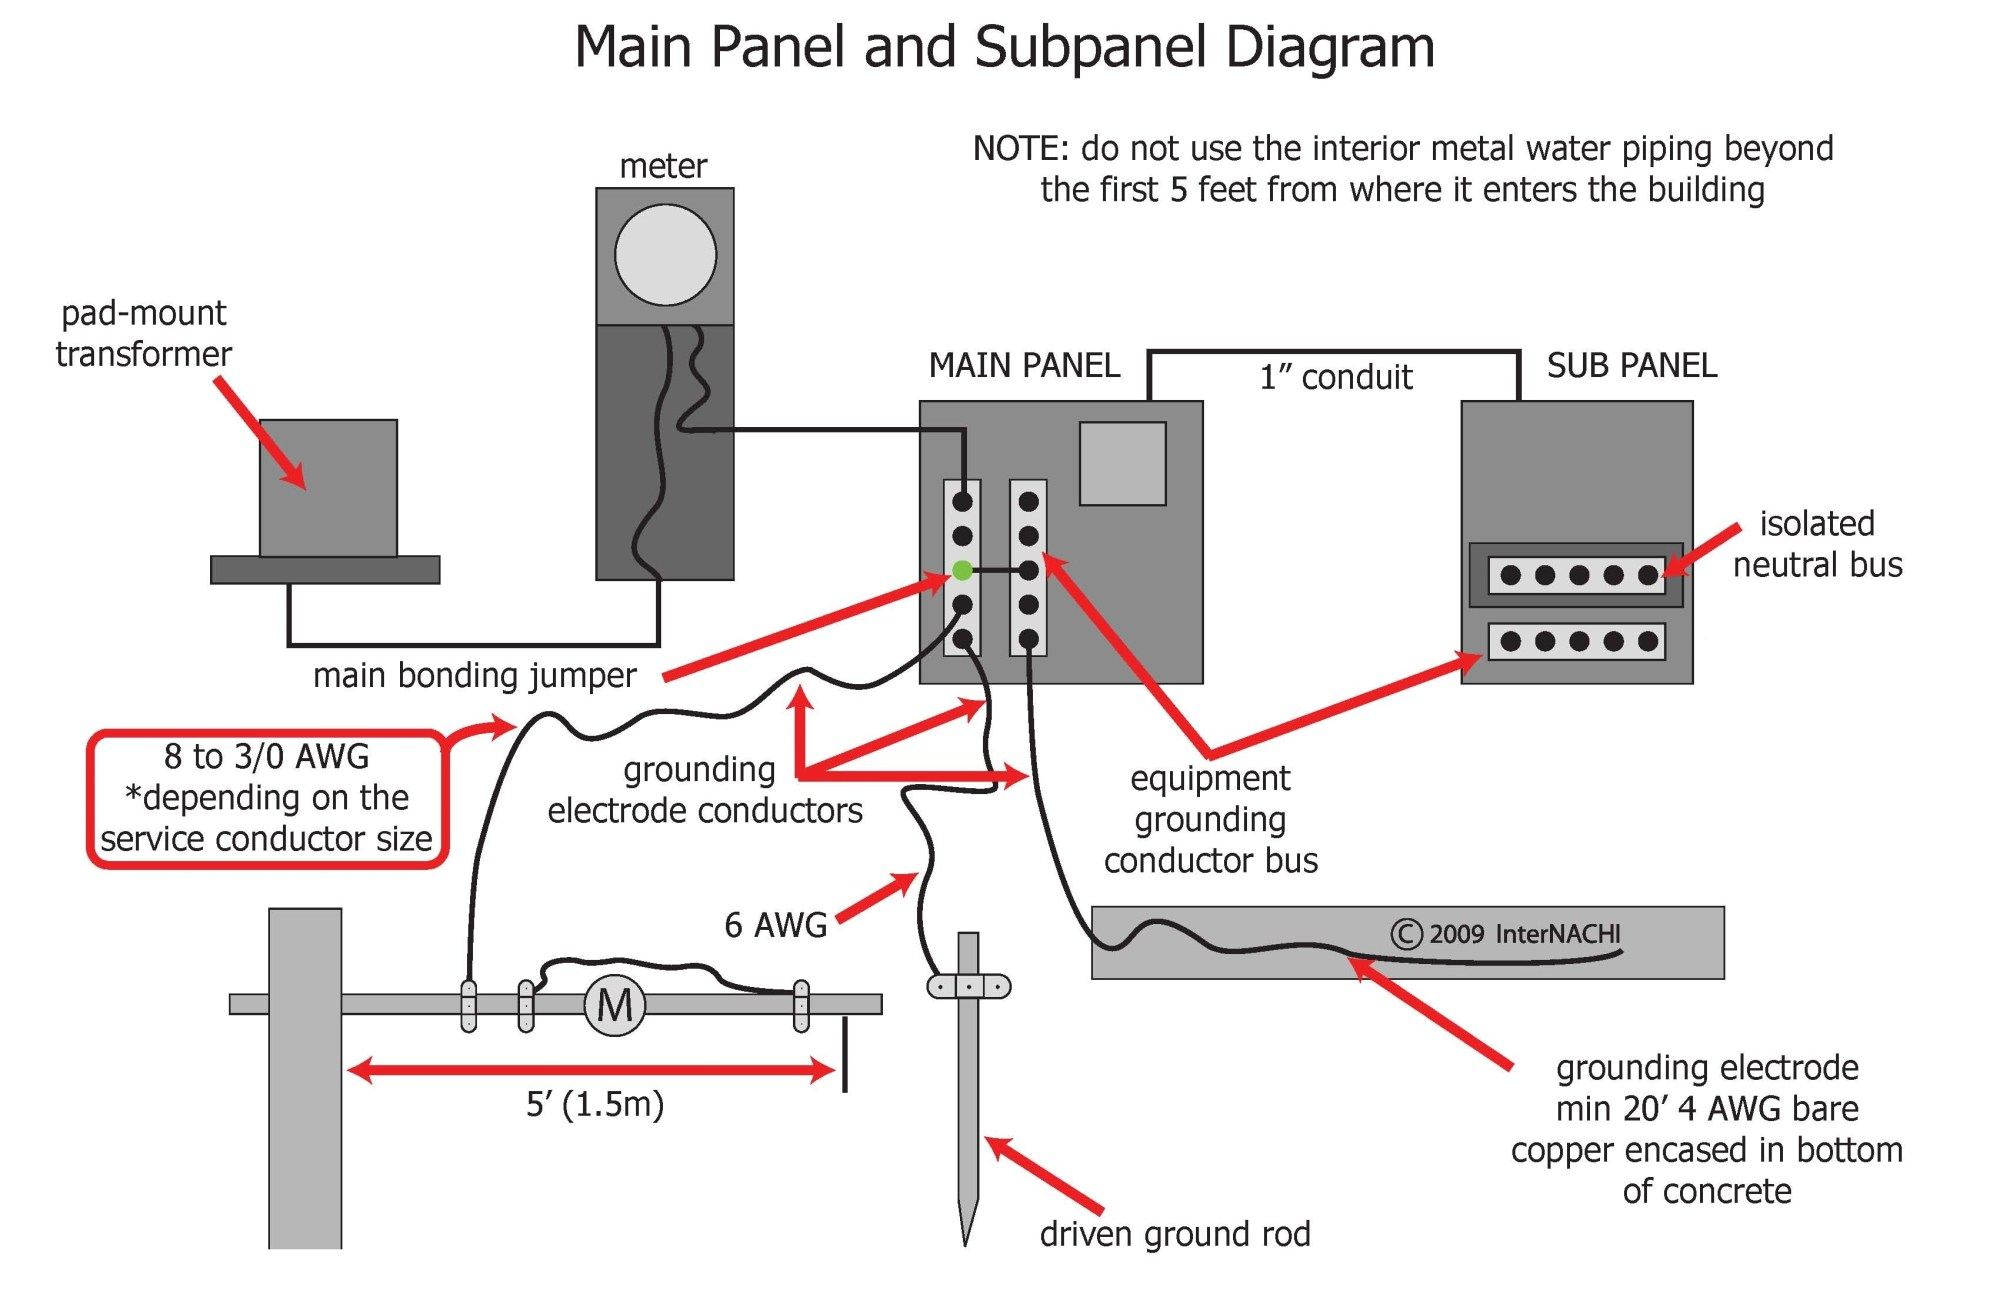 hight resolution of hight resolution of service panel diagram wiring diagram for you electrical circuit breaker panel diagram main